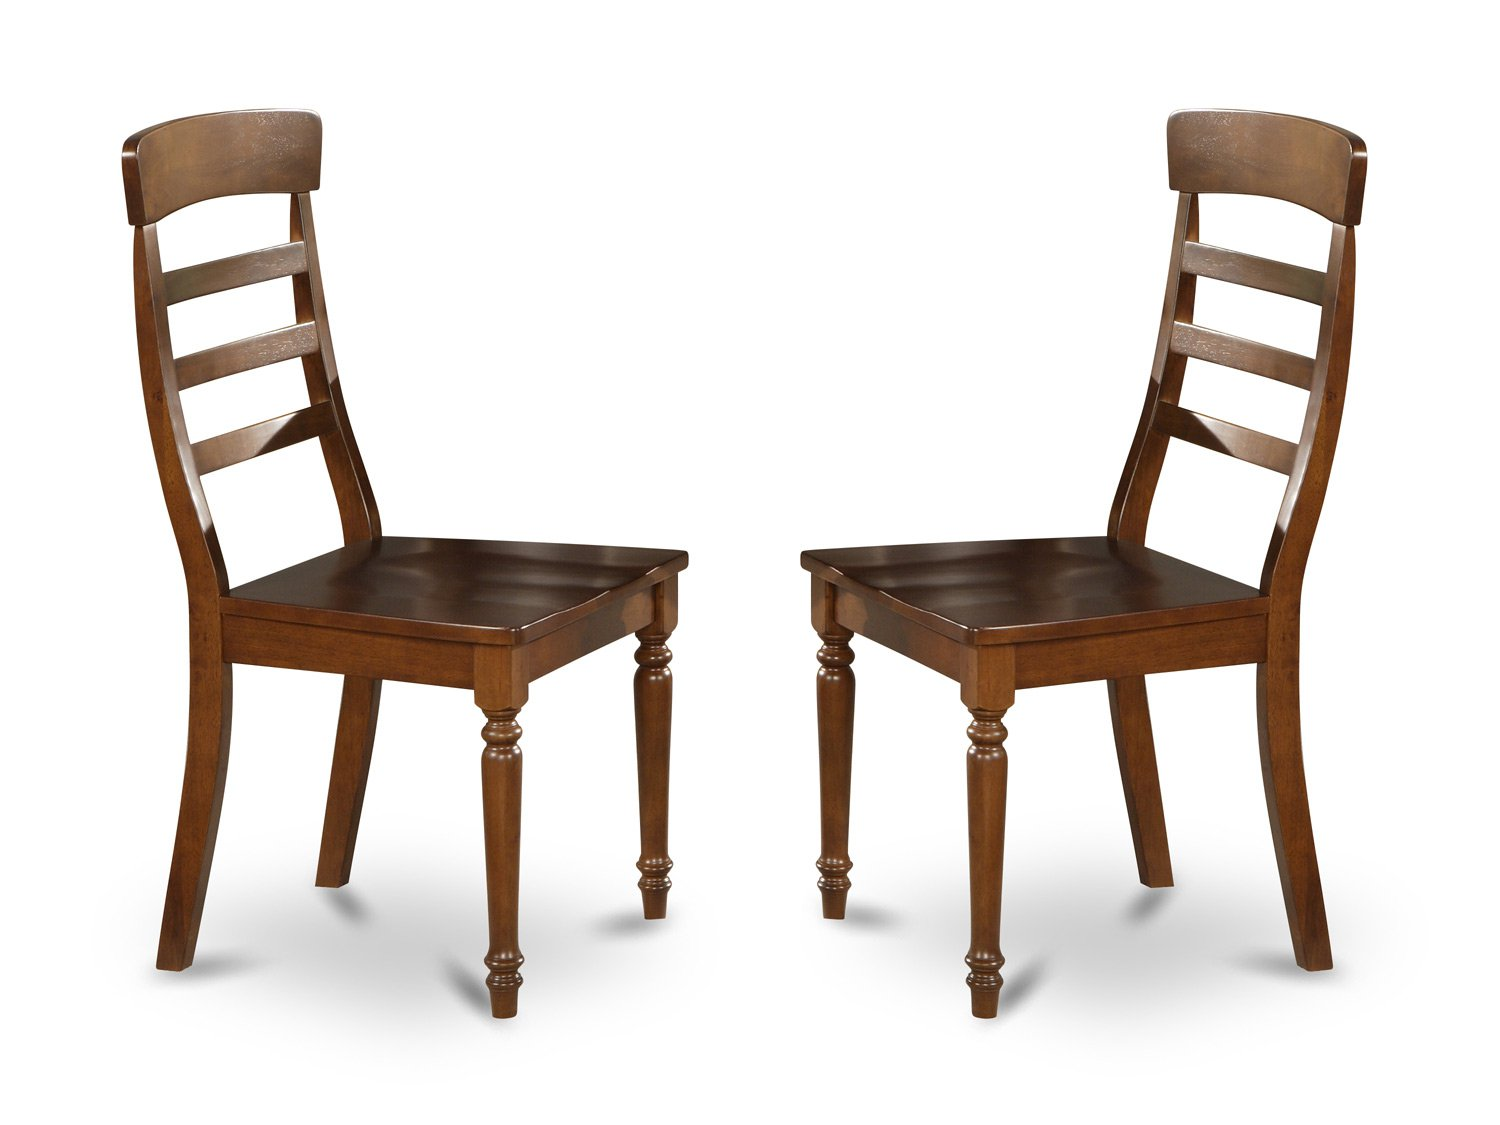 Set of 2 vintage  chairs dining room chairs with wood seat or cushion seat walnut finish.